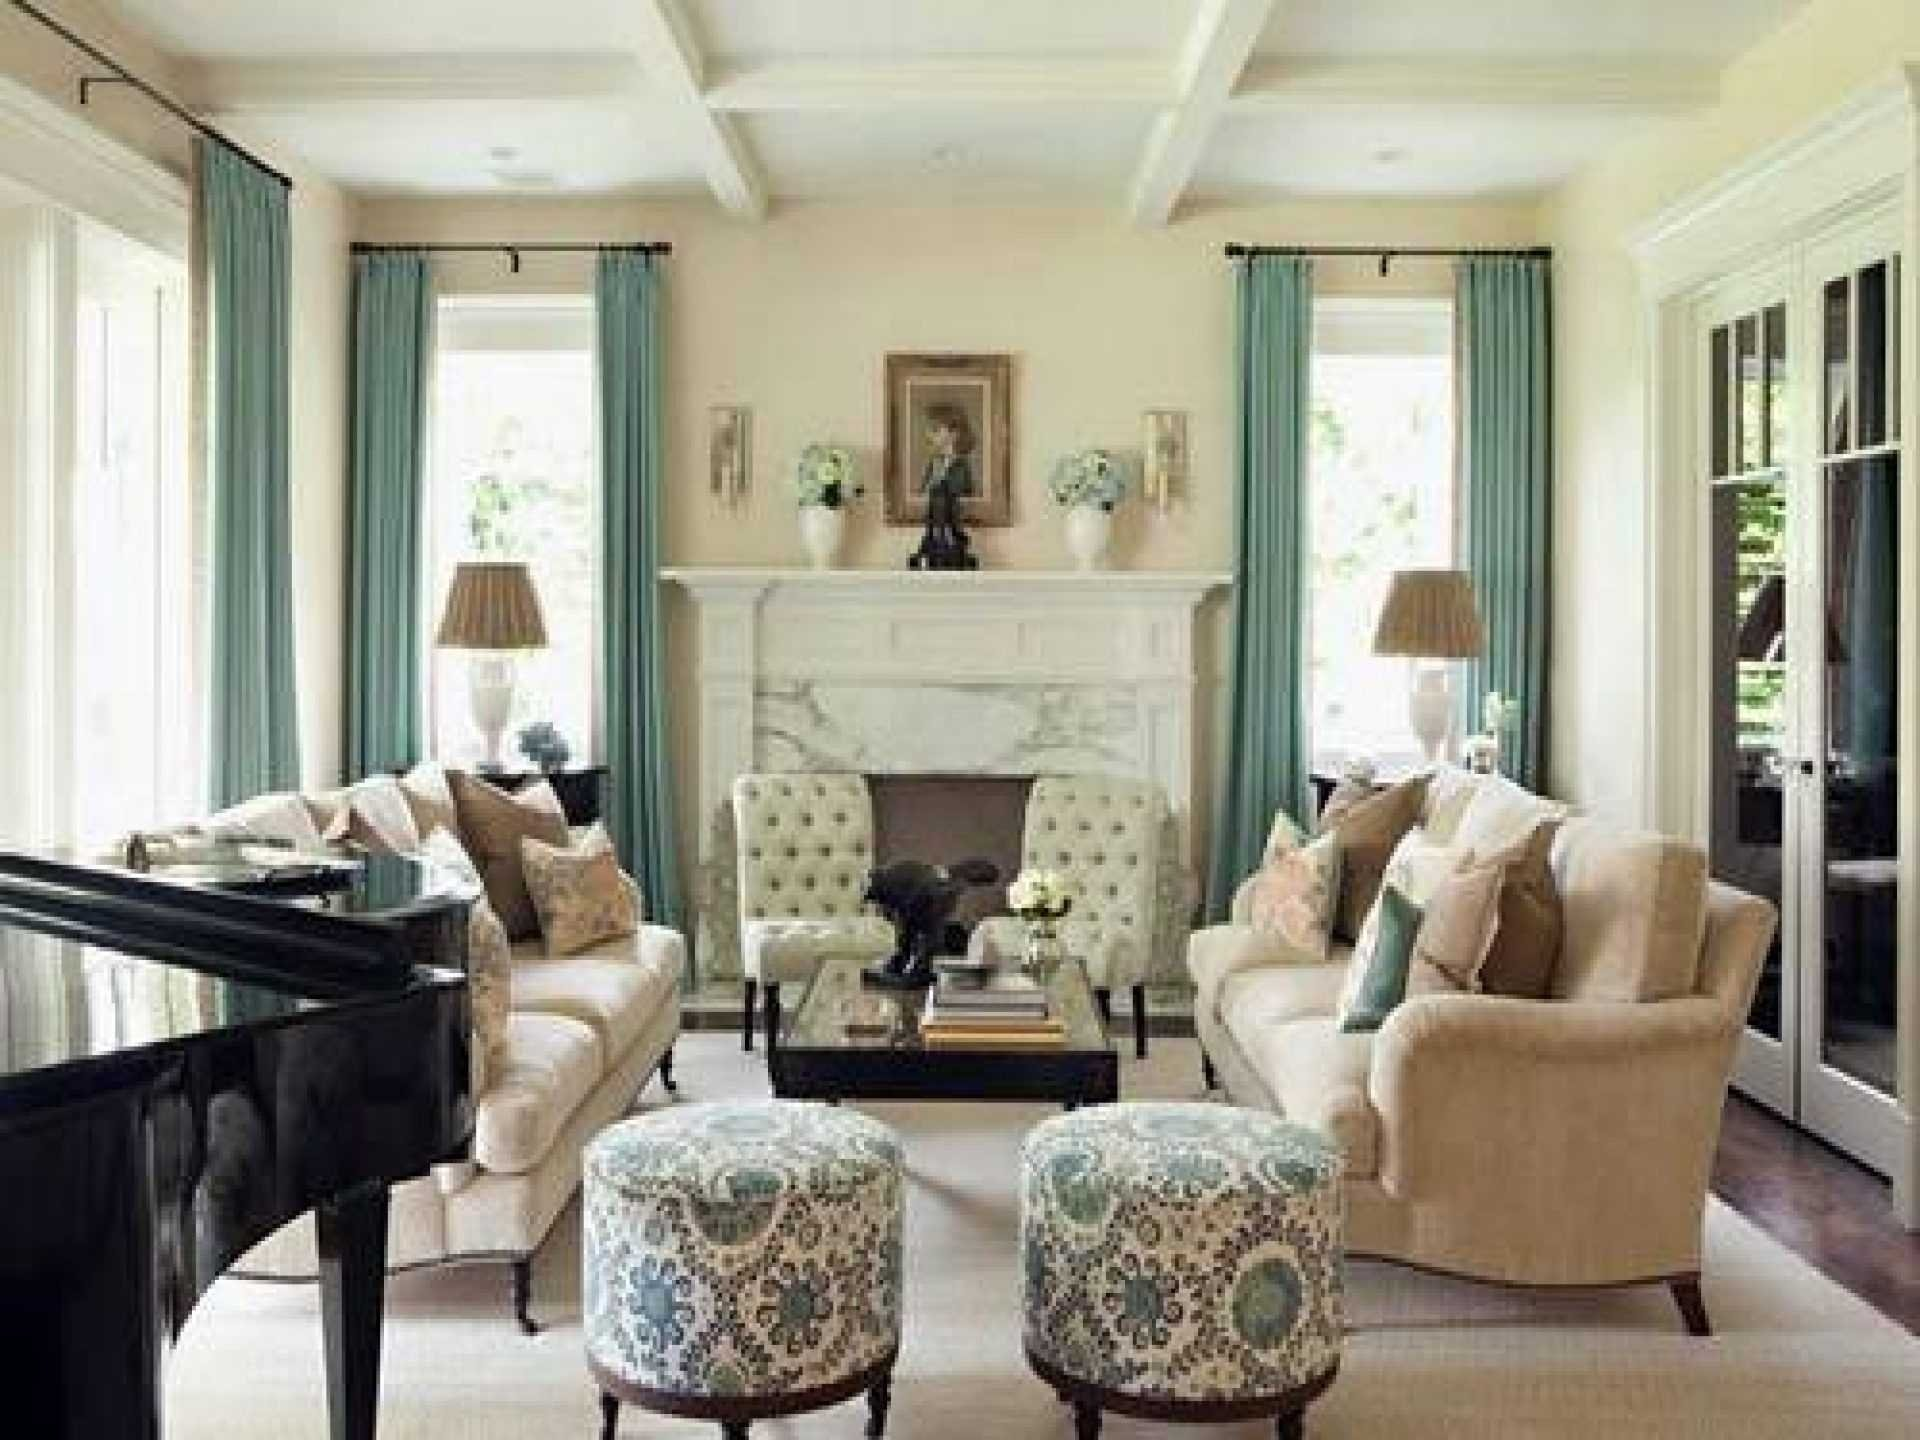 10 Great Family Room Furniture Layout Ideas family room furniture layout ideas design stores 2018 with beautiful